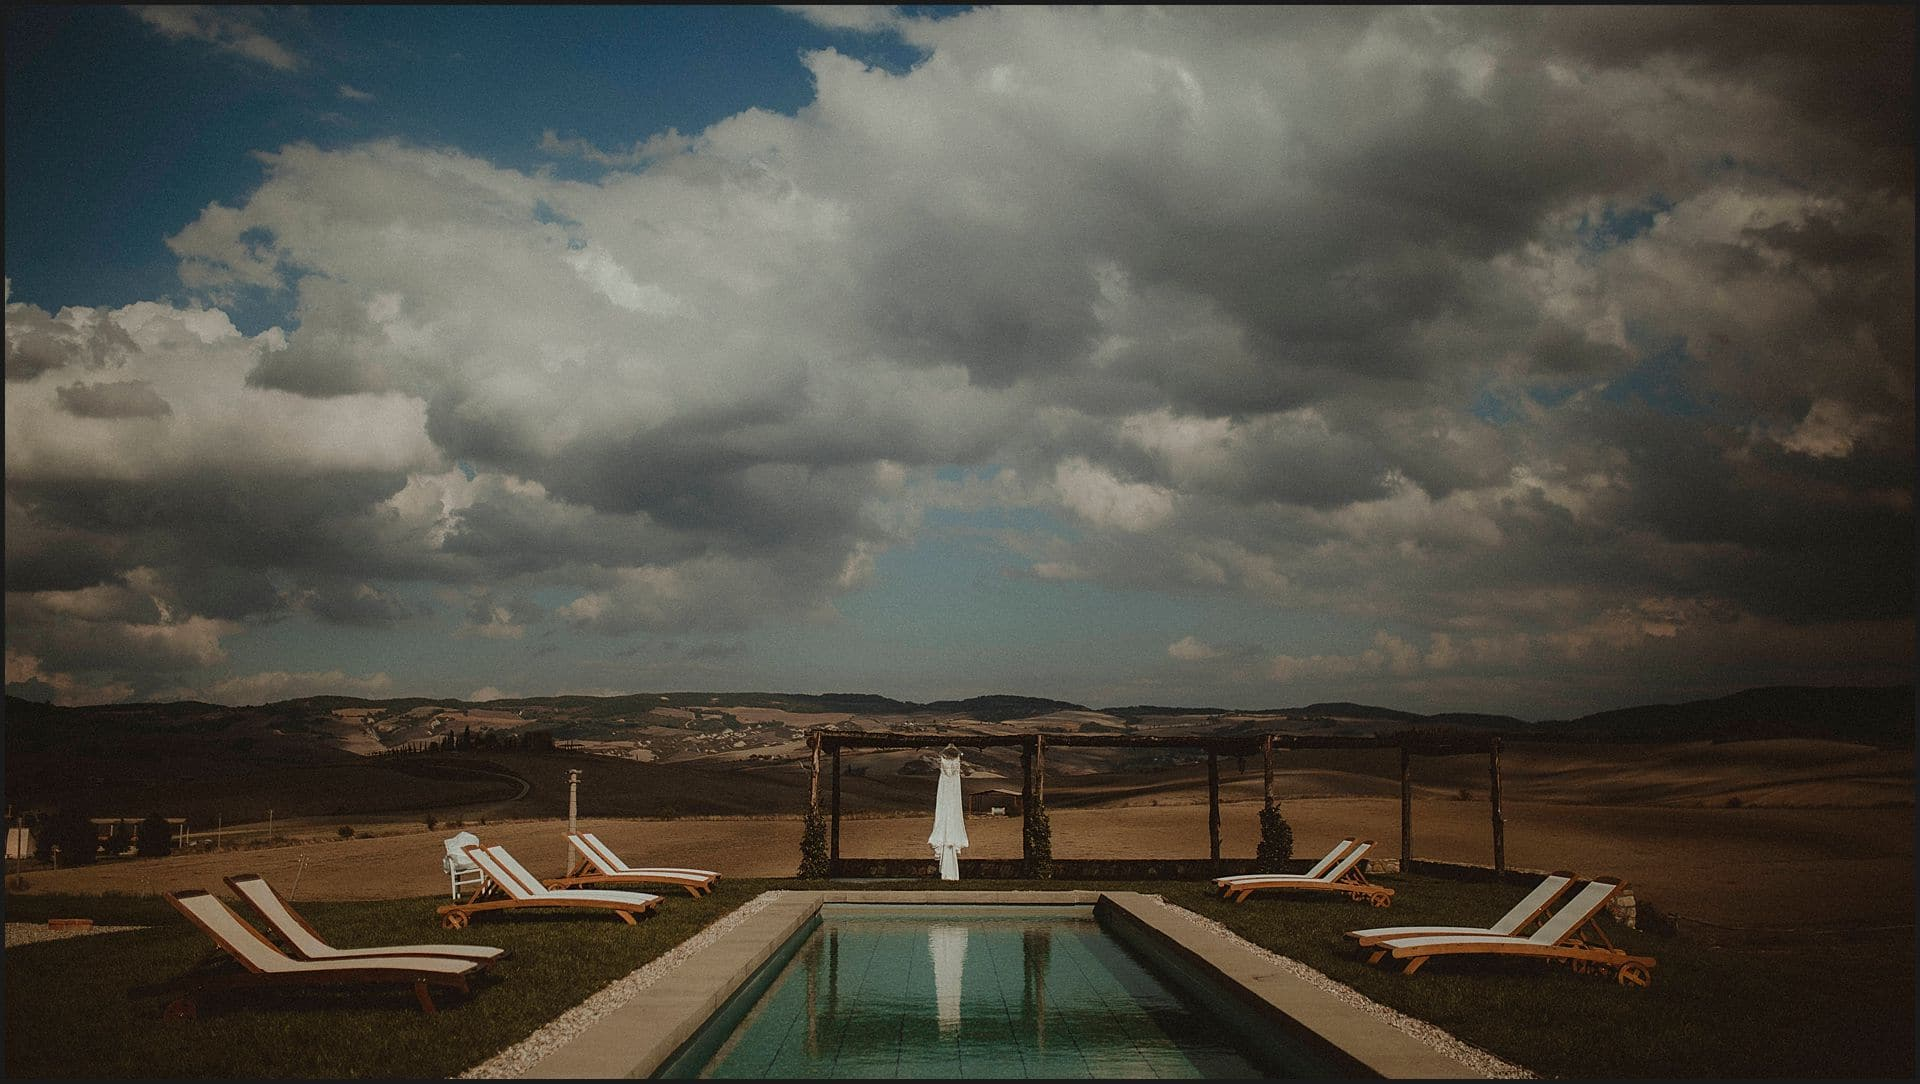 locanda in tuscany, bride dress, swimming pool, siena, tuscany, wedding, elopement, val d'orcia wedding